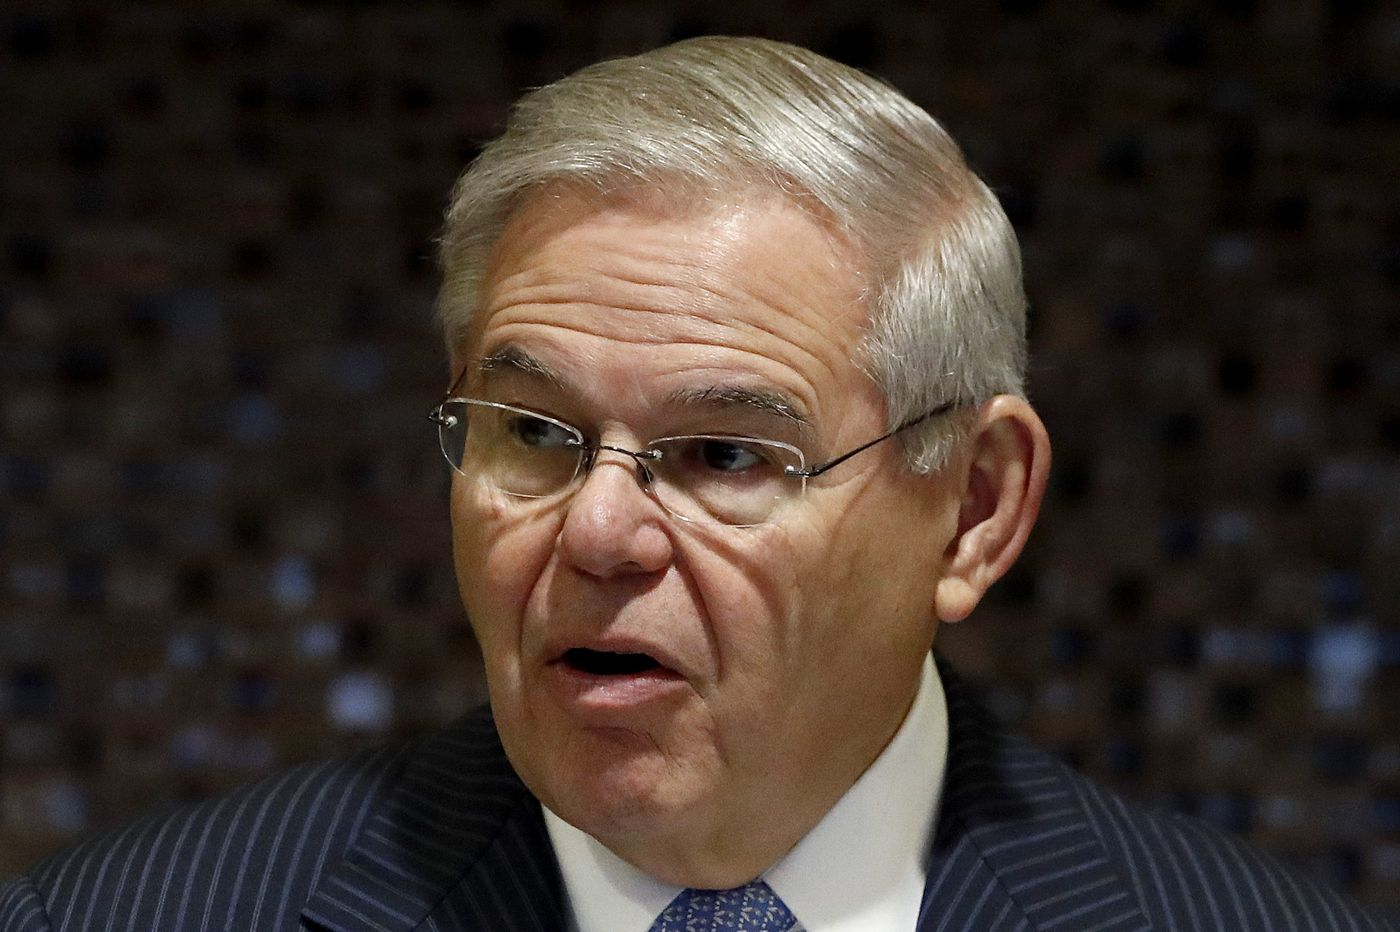 Reluctantly, we endorse Sen. Bob Menendez for N.J. Senate | Endorsement